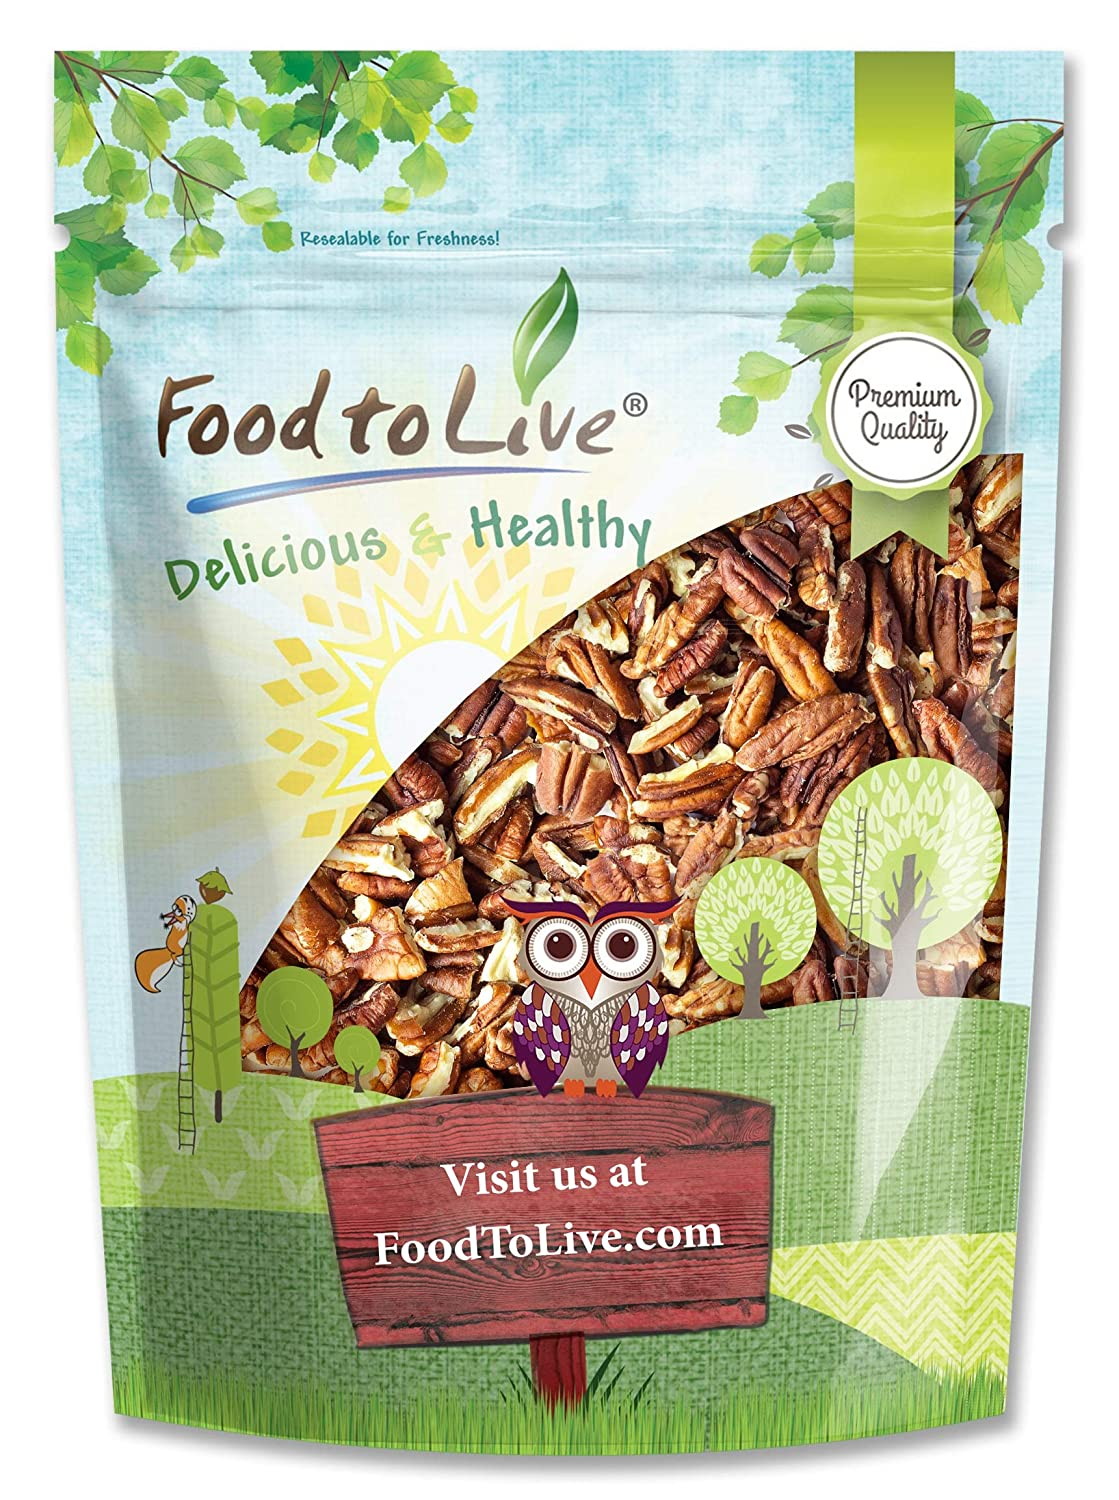 Pecans Pieces, 2 Pounds — Non-GMO Verified, Raw, Chopped, Unsalted, Unroasted, Kosher, Vegan, Bulk, Great Gourmet Nuts for Baking, Sirtfood